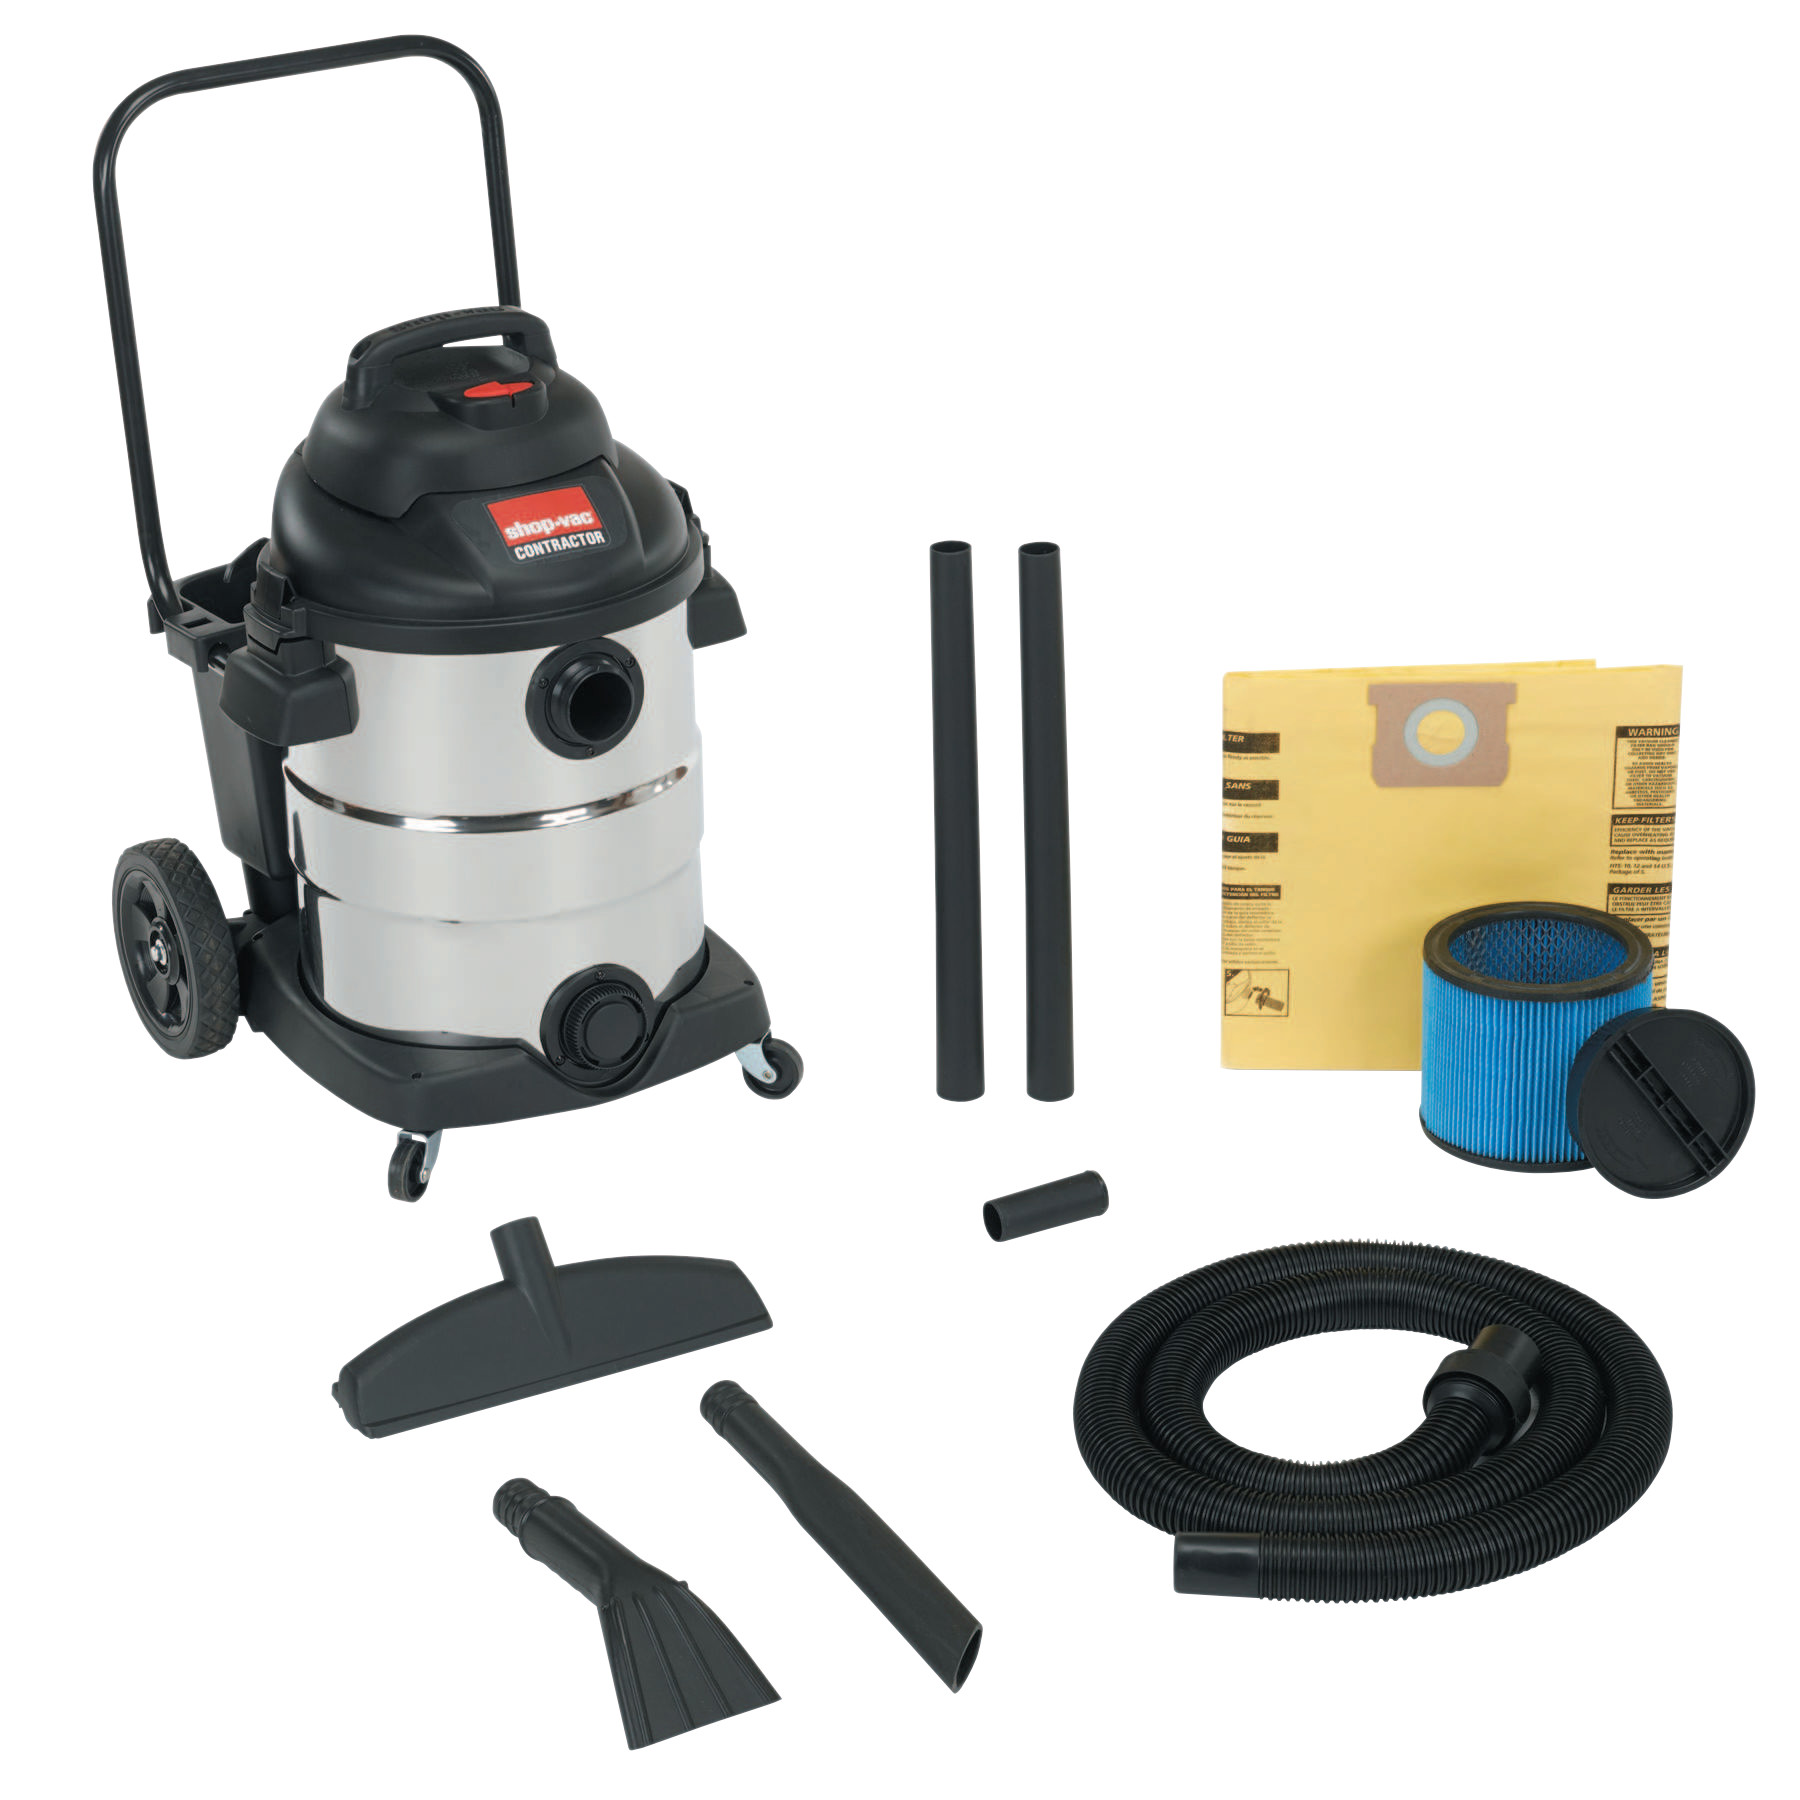 Shop-Vac Carted Contractor Wet/Dry Vacuums, 10 gal